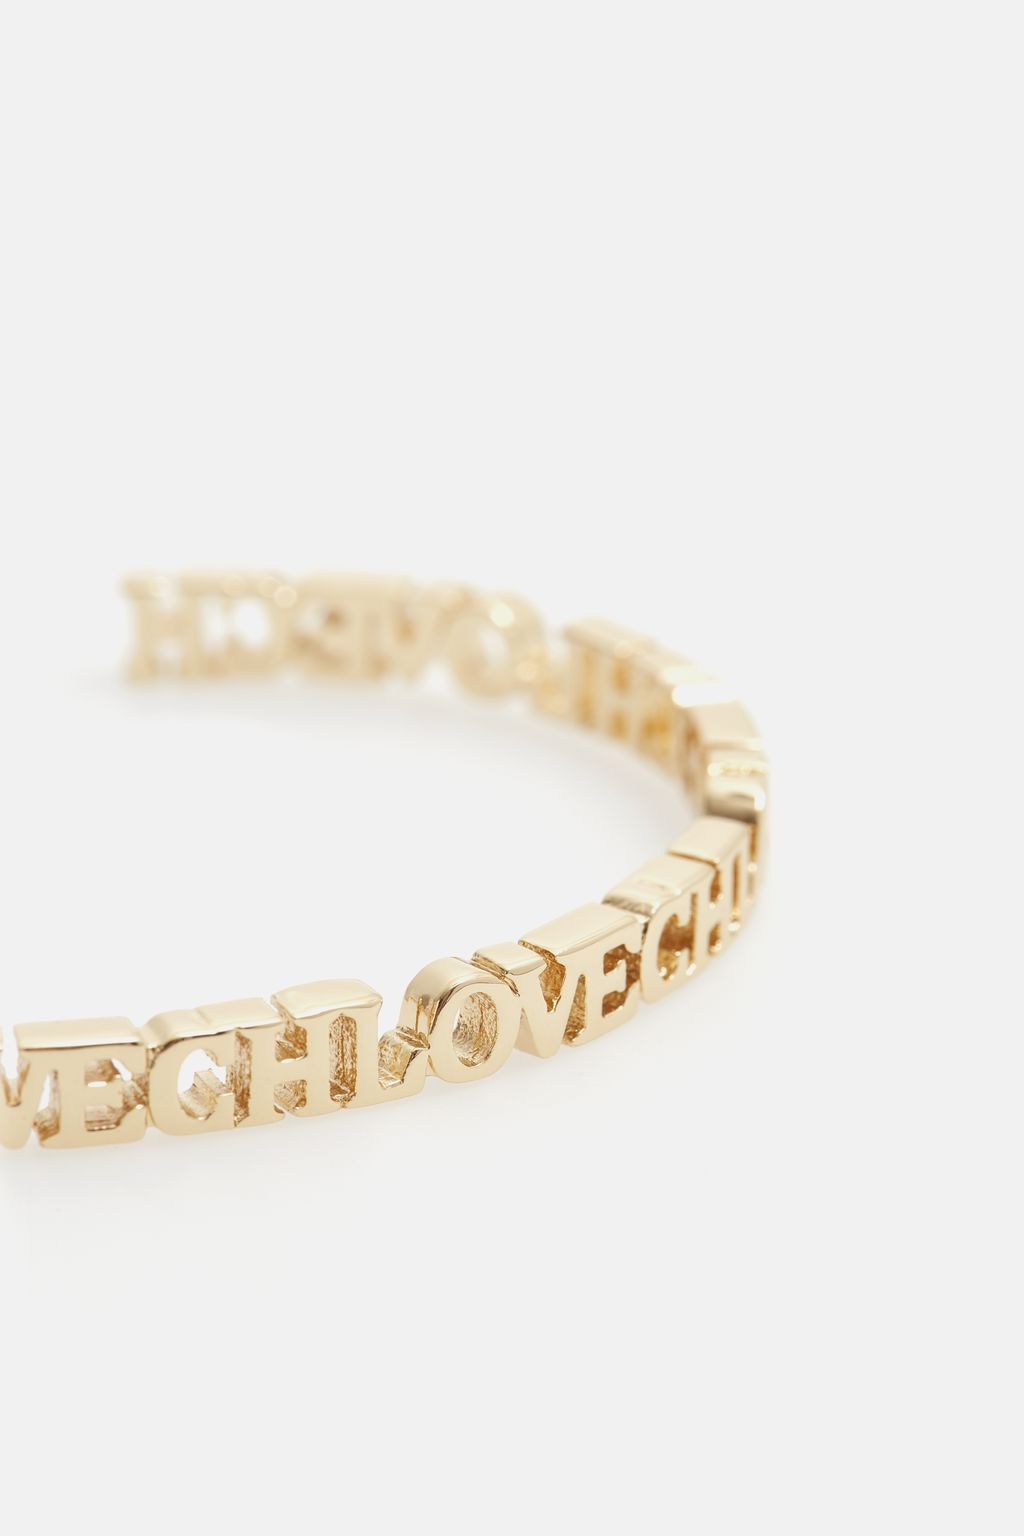 Between the Line CH Love thin cuff